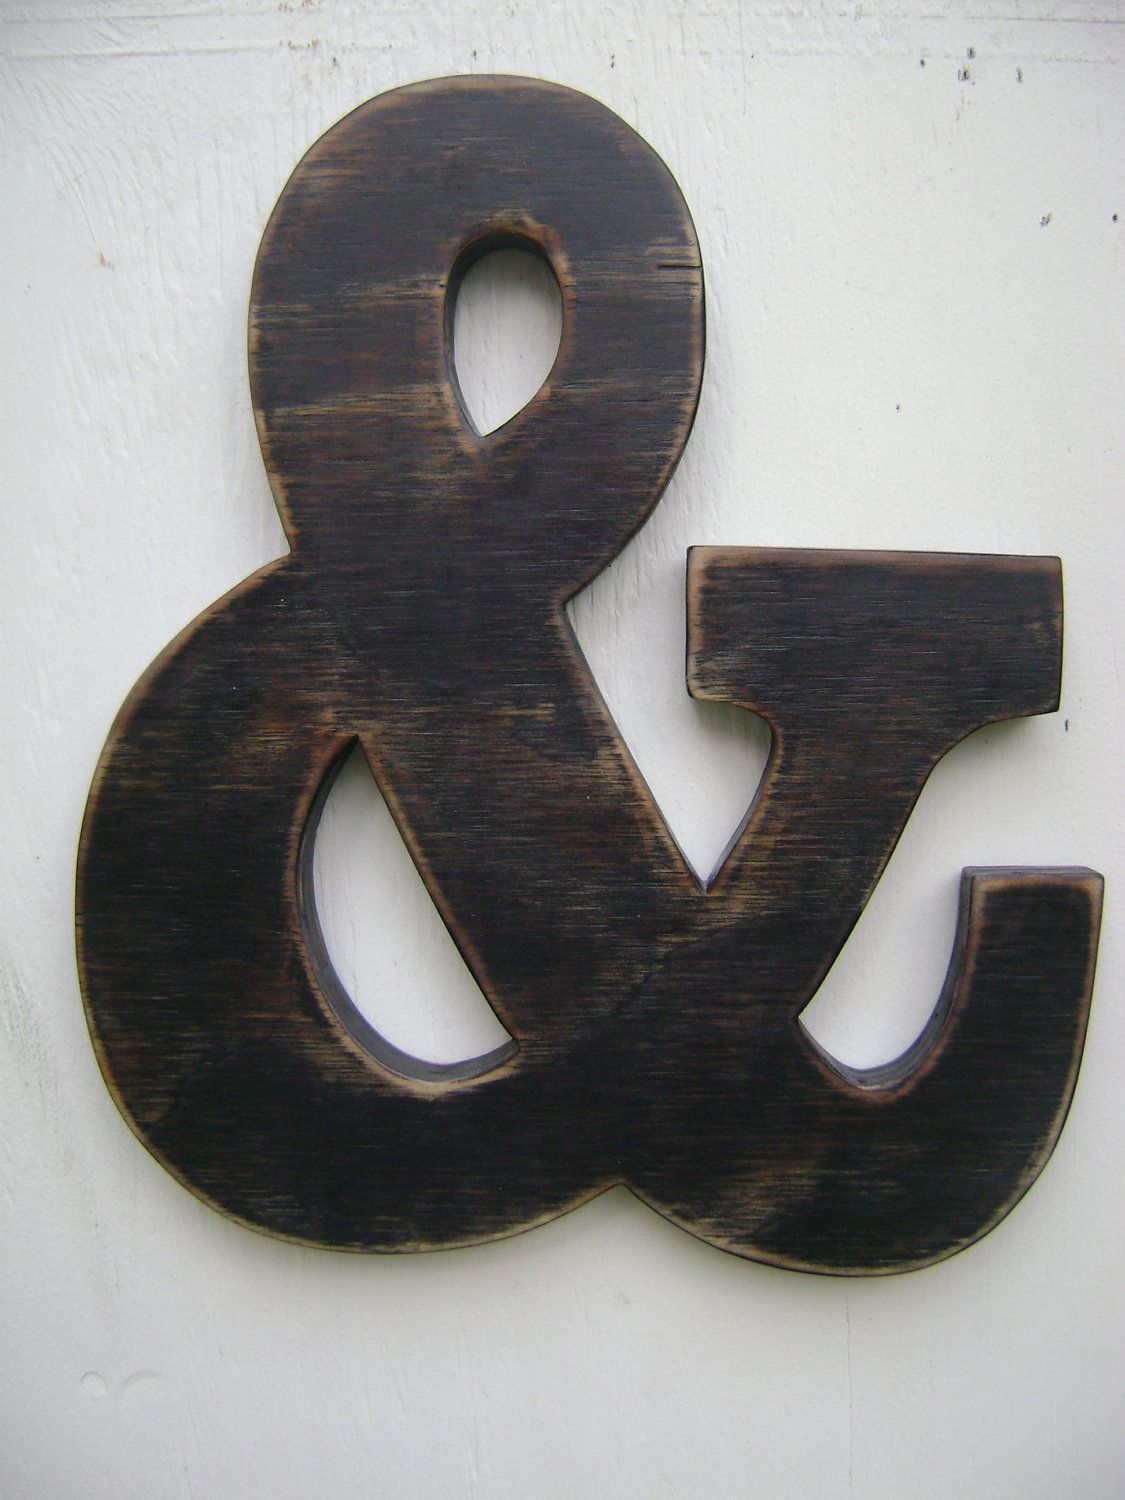 & Sign Wall Decor Ampersand And Sign Rustic Wall Hanging Wooden Letters Shabby Chic